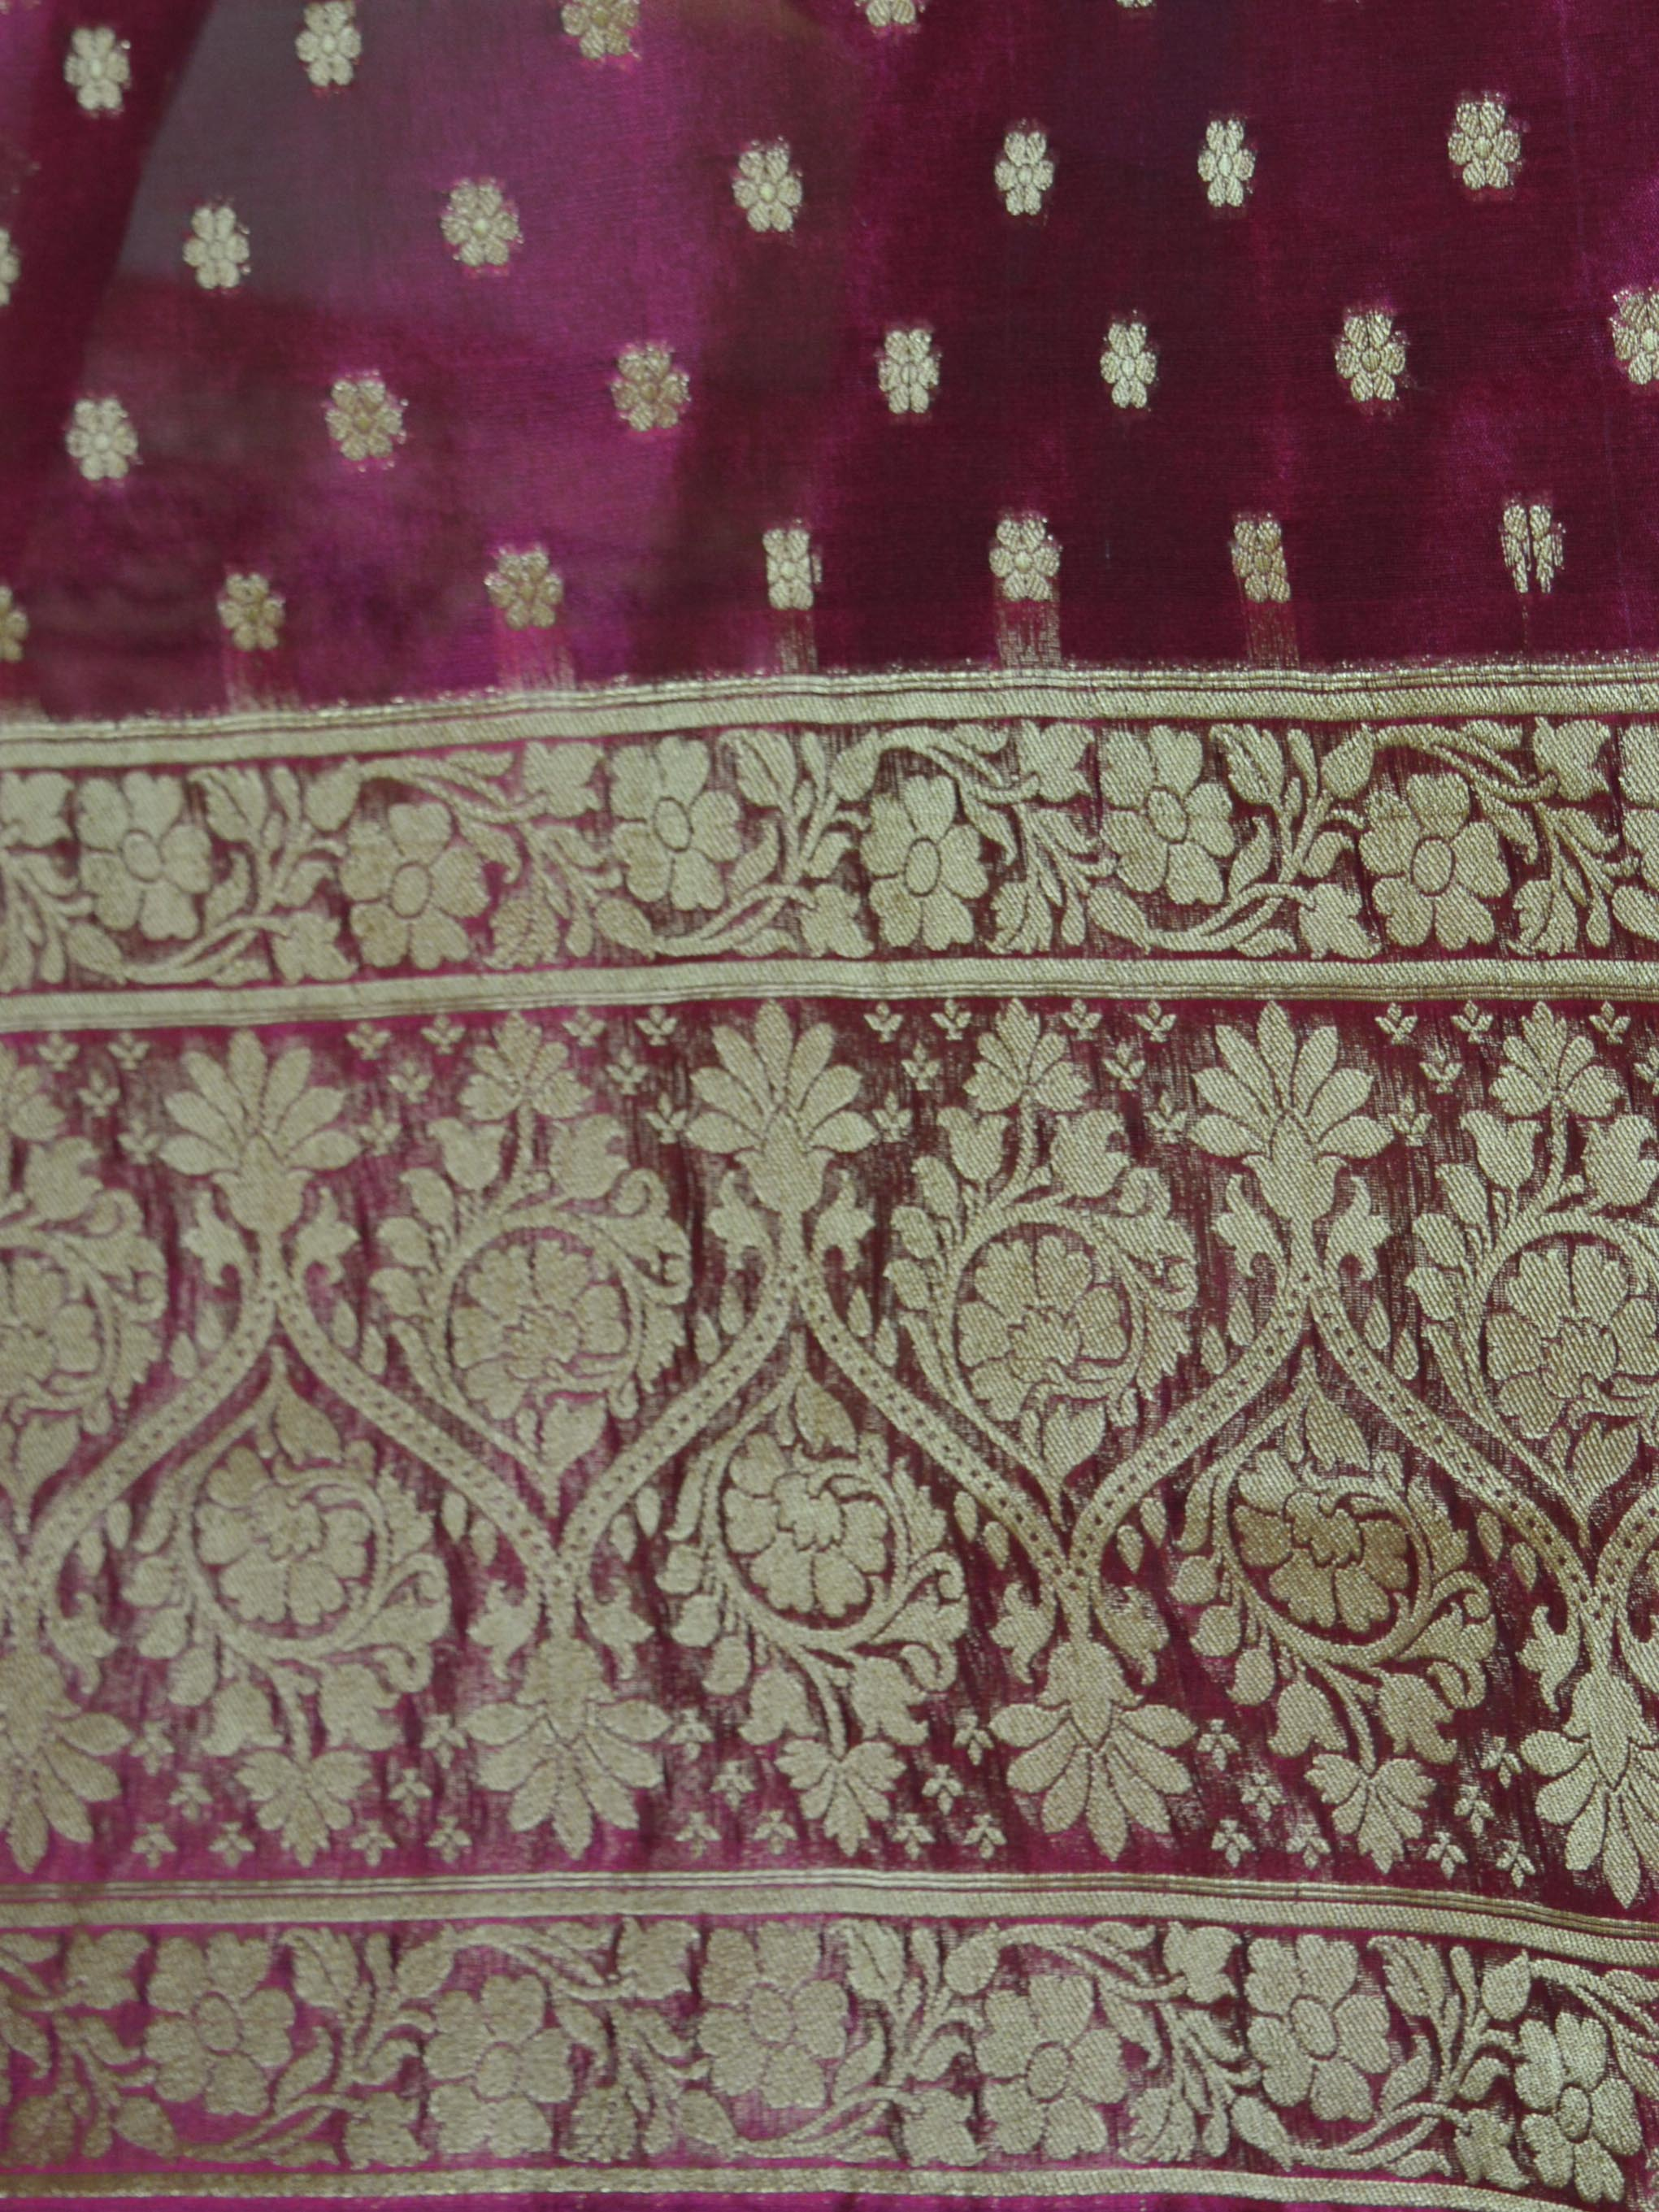 Banarasee Salwar Kameez Cotton Silk Gold Zari Jaal Woven Fabric-Magenta